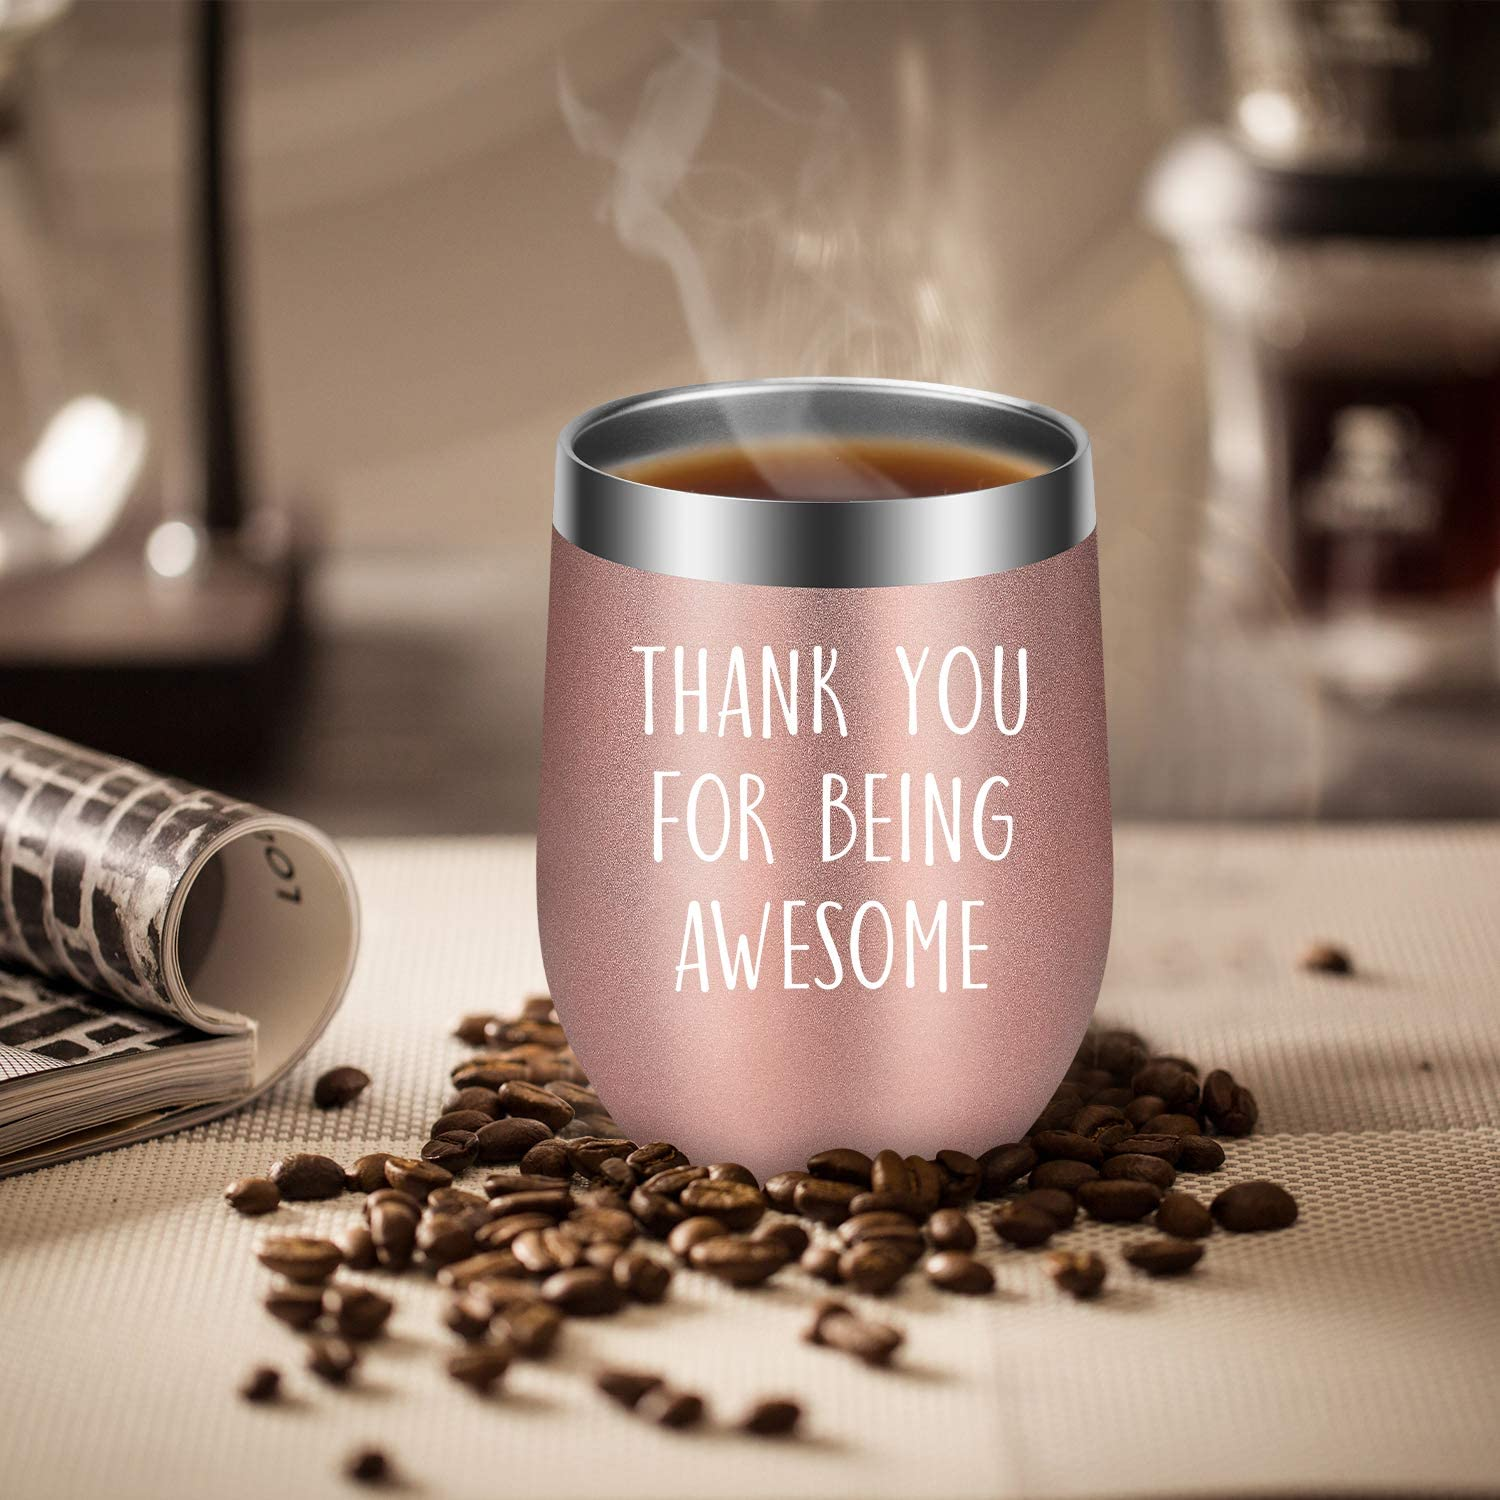 Thank You for Being Awesome LEADO Wine Tumbler Cup Christmas Wine Gifts Ideas for Best Friend Coworker Employee Appreciation Gifts Funny Friendship Thank You Gifts for Women Boss Birthday